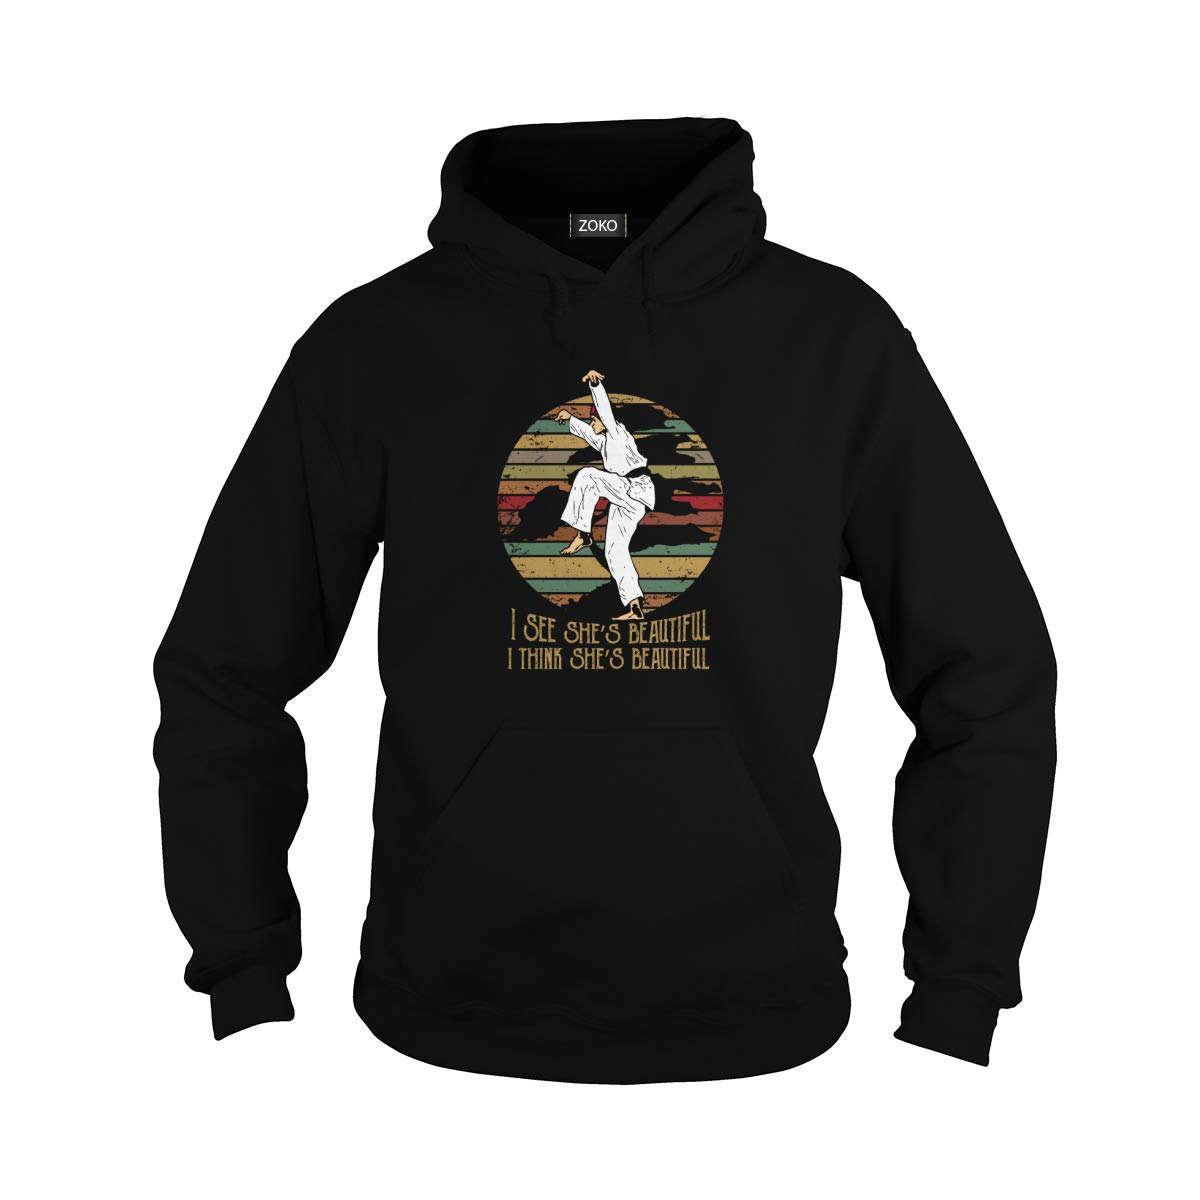 Unisex I See She's Beautiful Vintage Adult Hooded Sweatshirt (3XL, Black) by Zoko Apparel